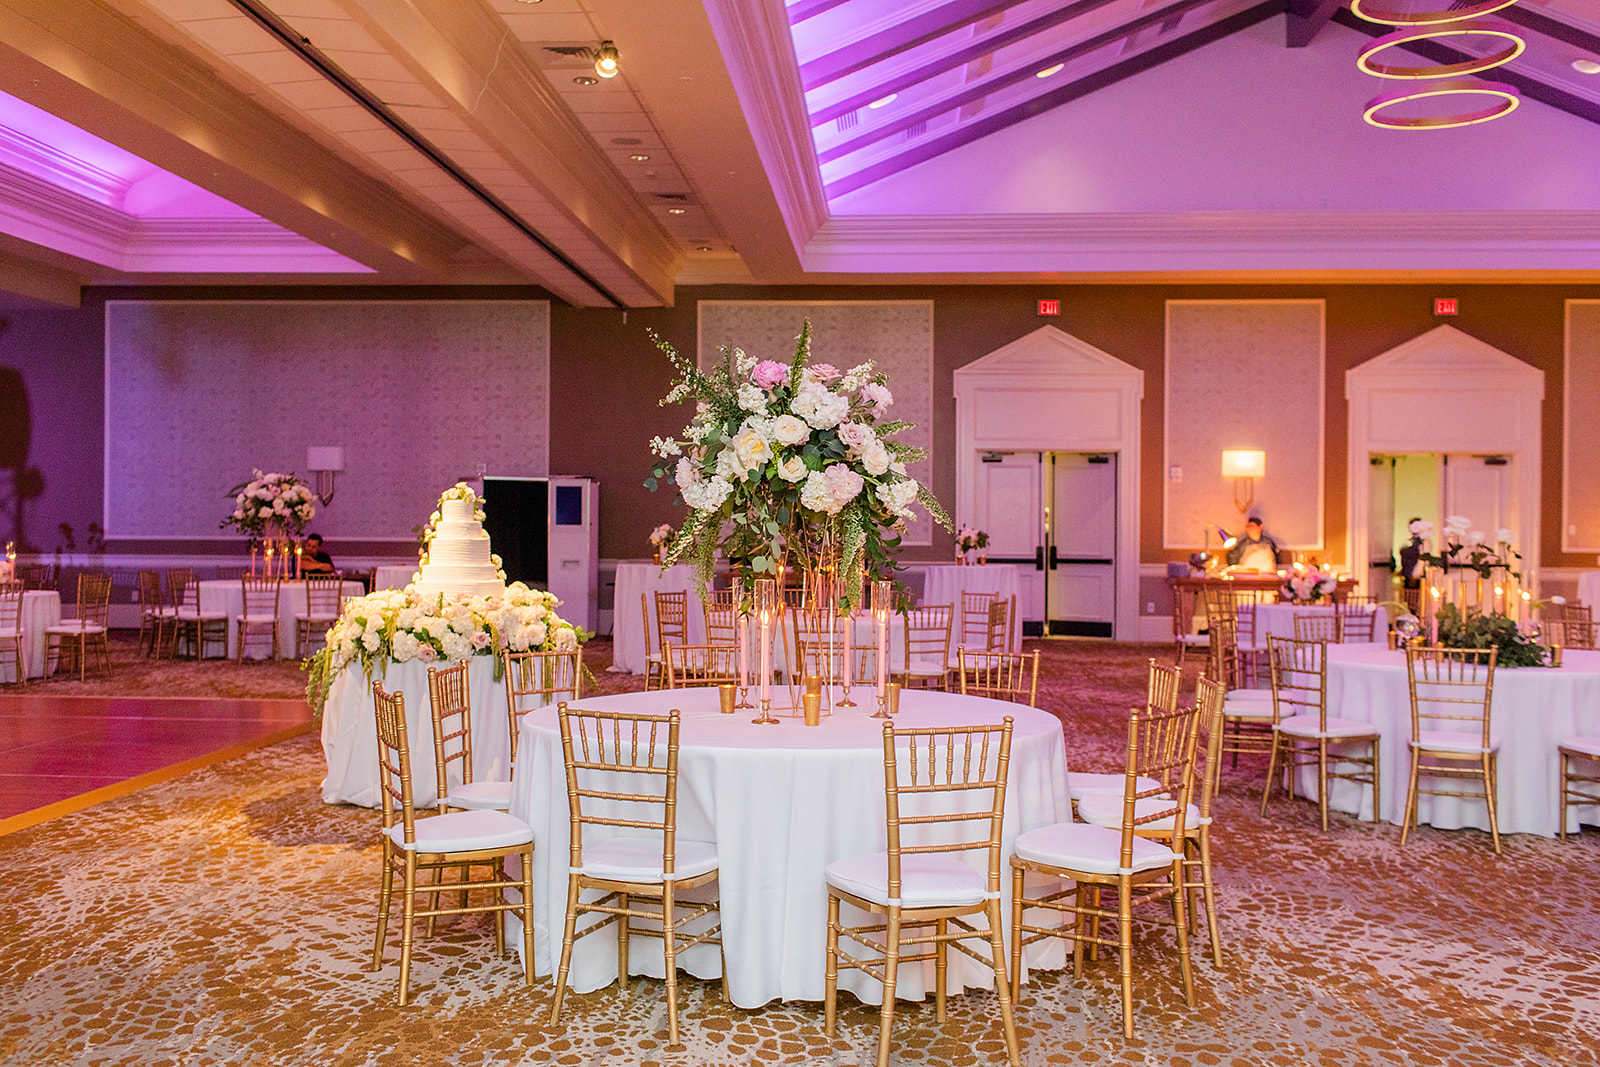 Blush-Black-Tie-Wedding-at-the-Grand-Hotel-in-Point-Clear-Alabama-Anna-Filly-Photography-Cross-Wedding-Reception-28.jpg